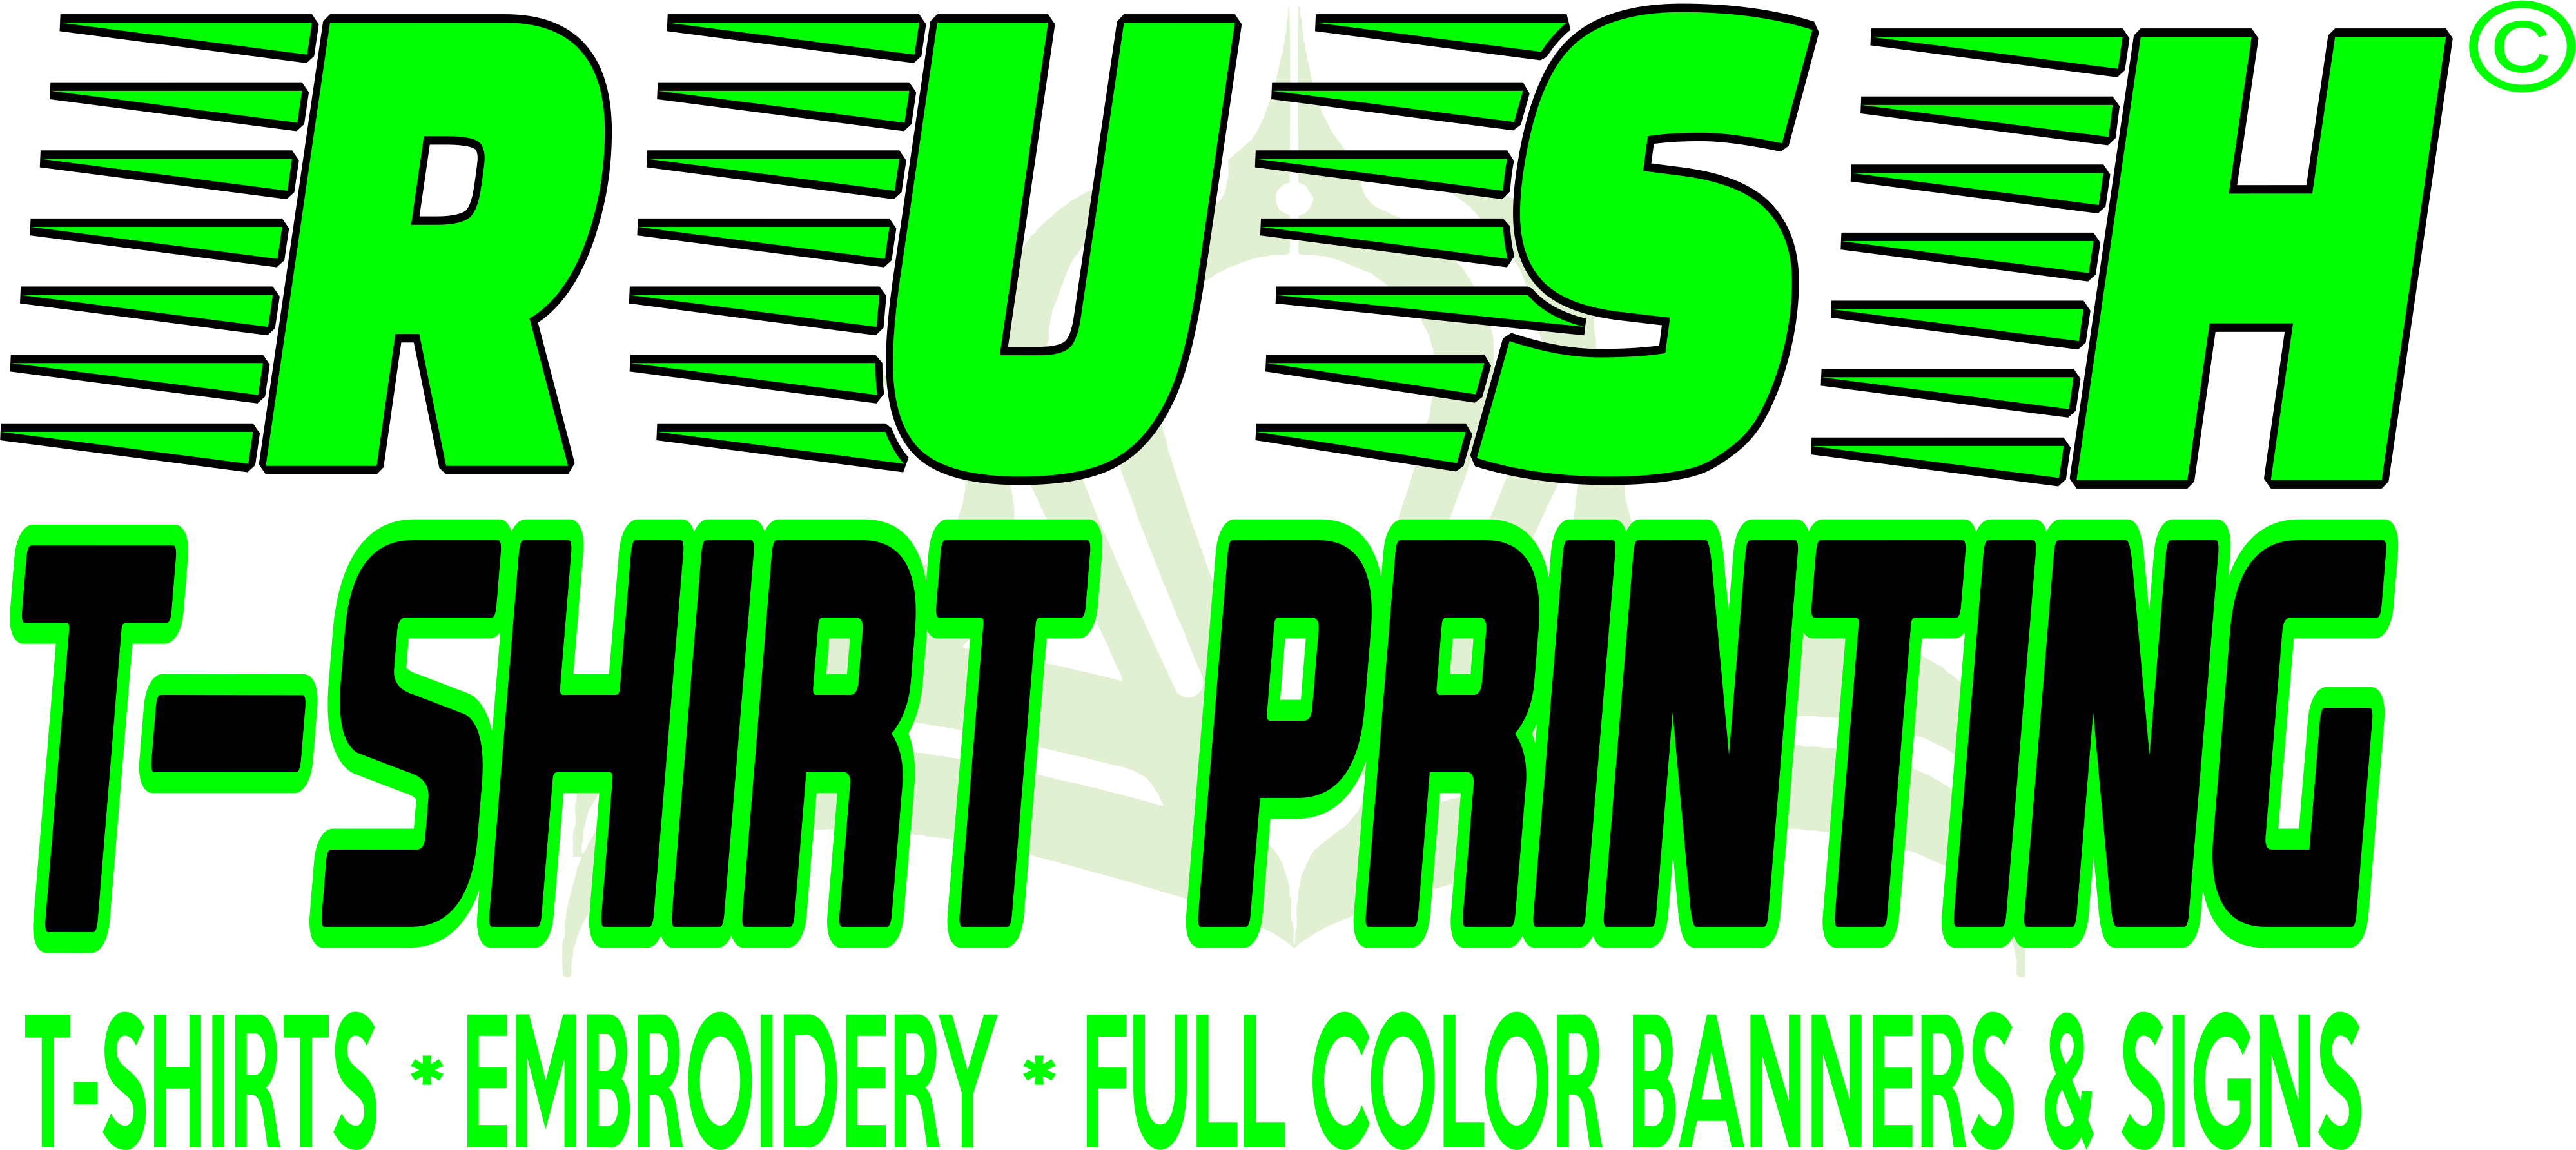 Rush Tshirt Printing Houston Texas